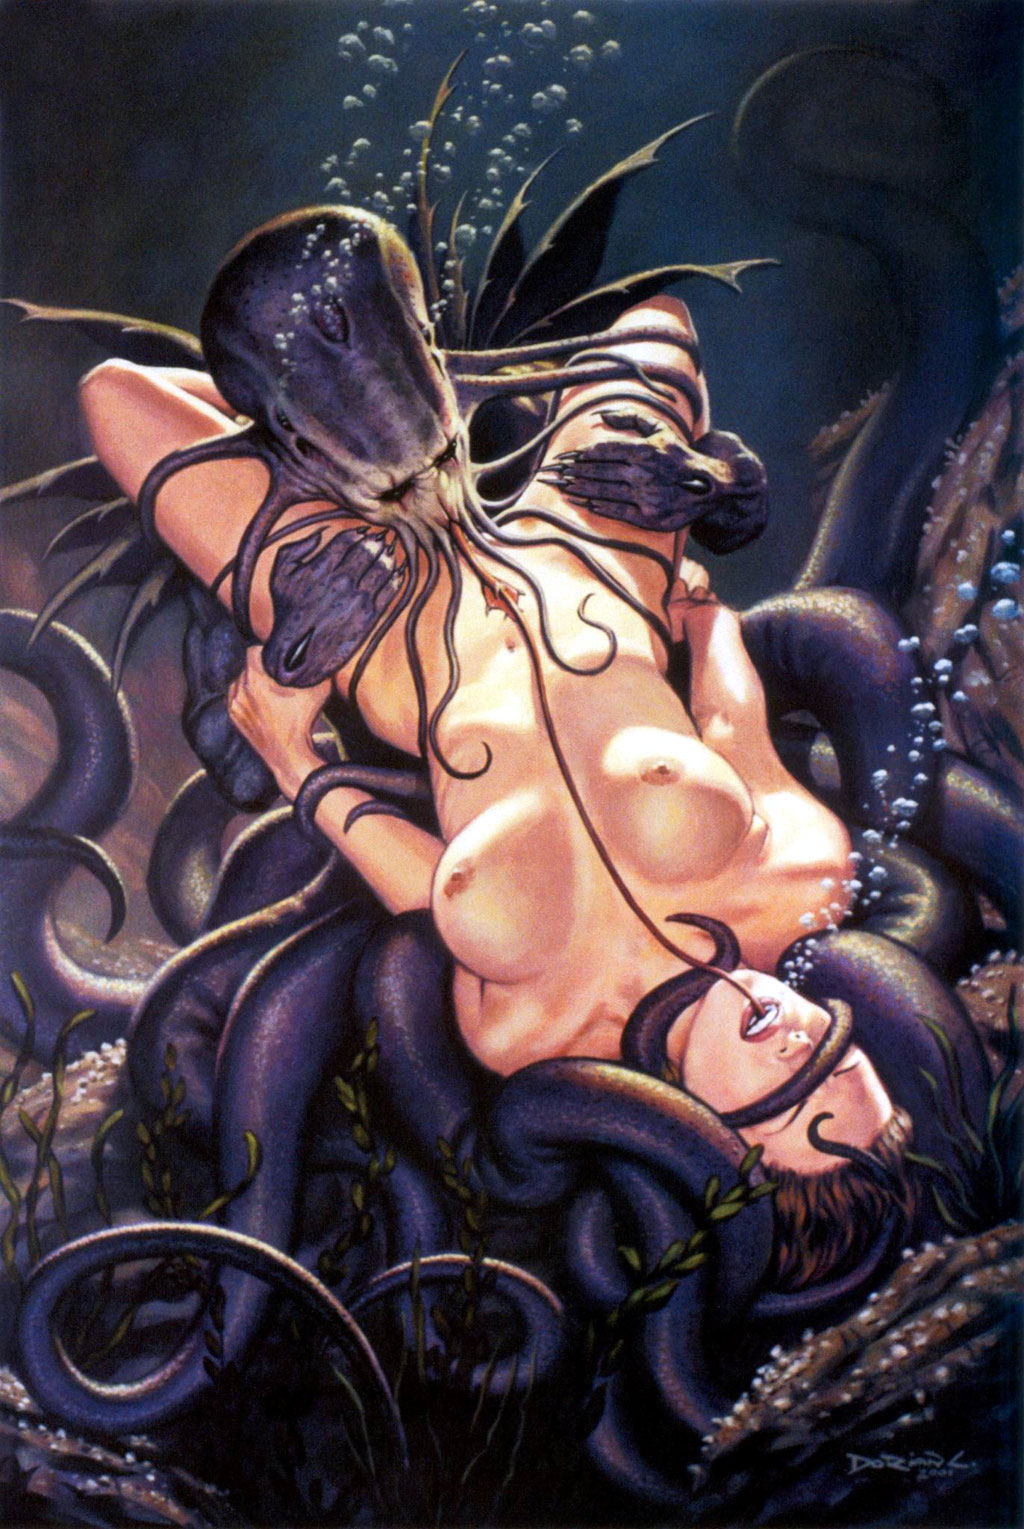 Demon erotic art erotic scenes